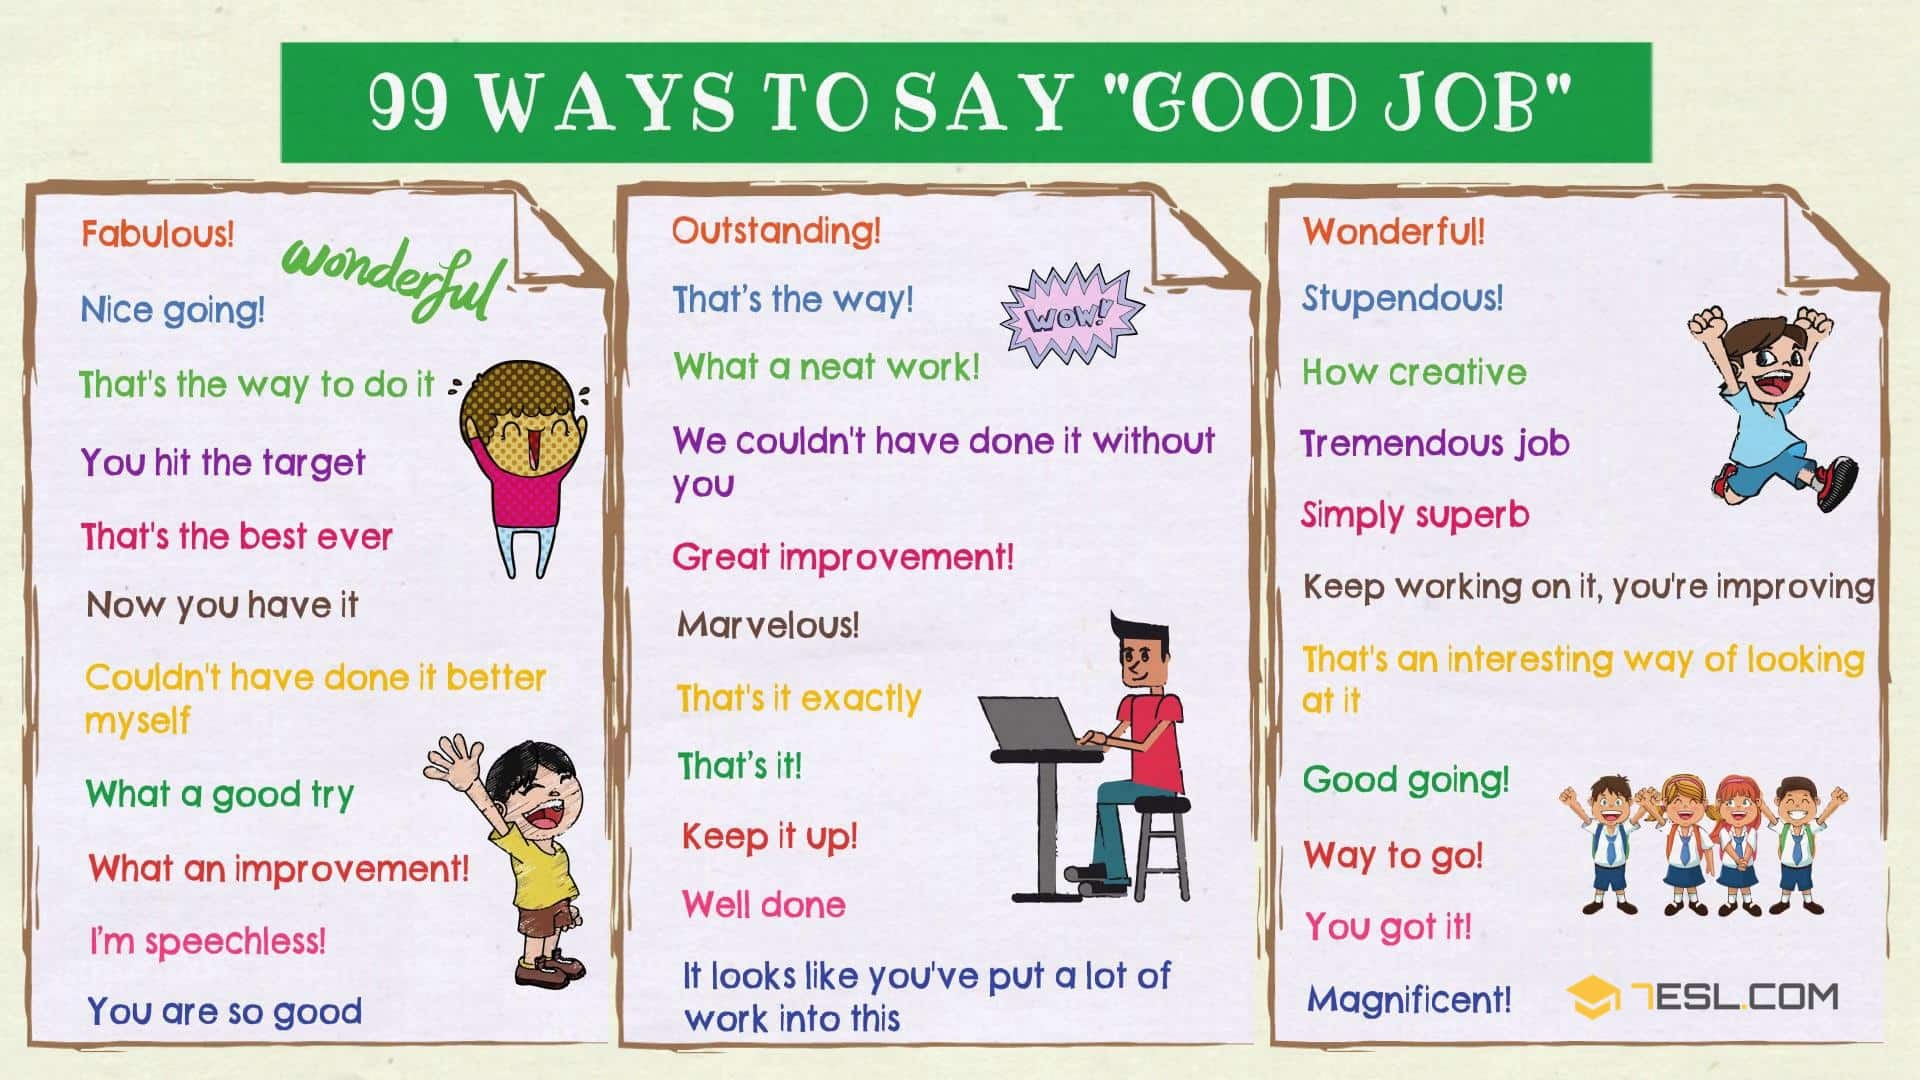 Good Job Synonym: 99 Ways to Say GOOD JOB in English